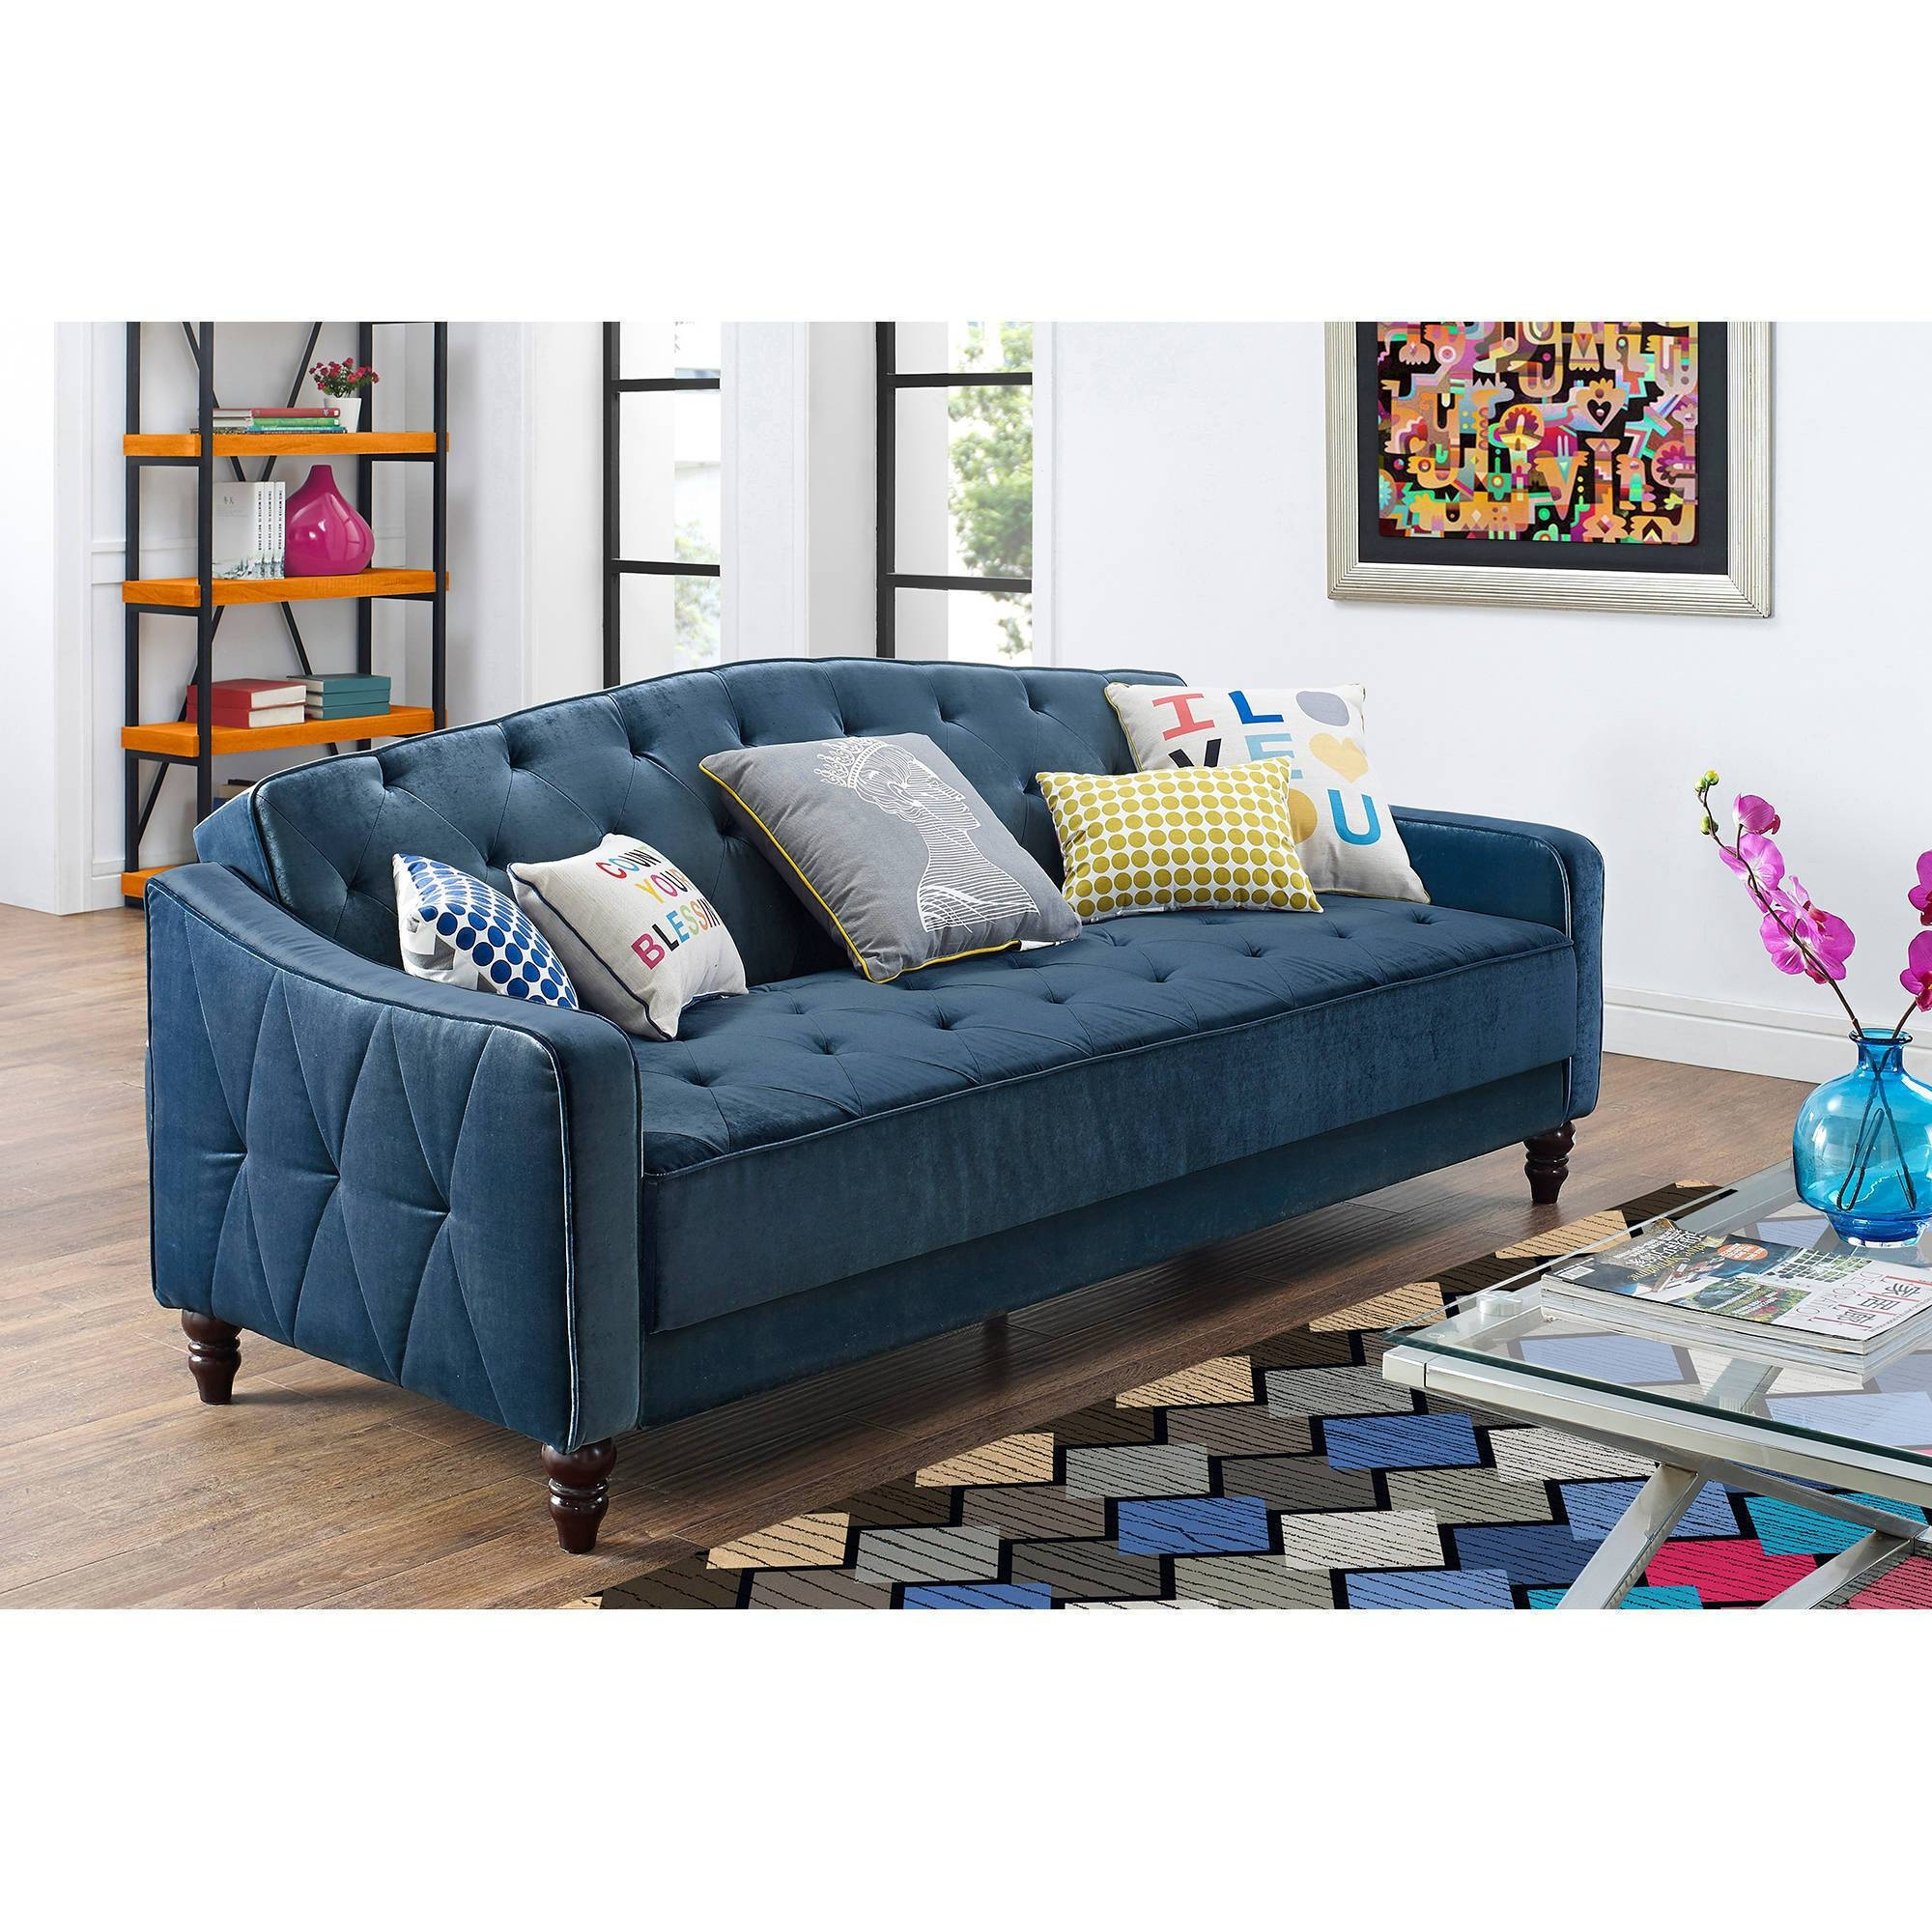 Coaster Company Black Accent Lounge Chair Futon Sofa Bed - Walmart within Convertible Futon Sofa Beds (Image 9 of 15)